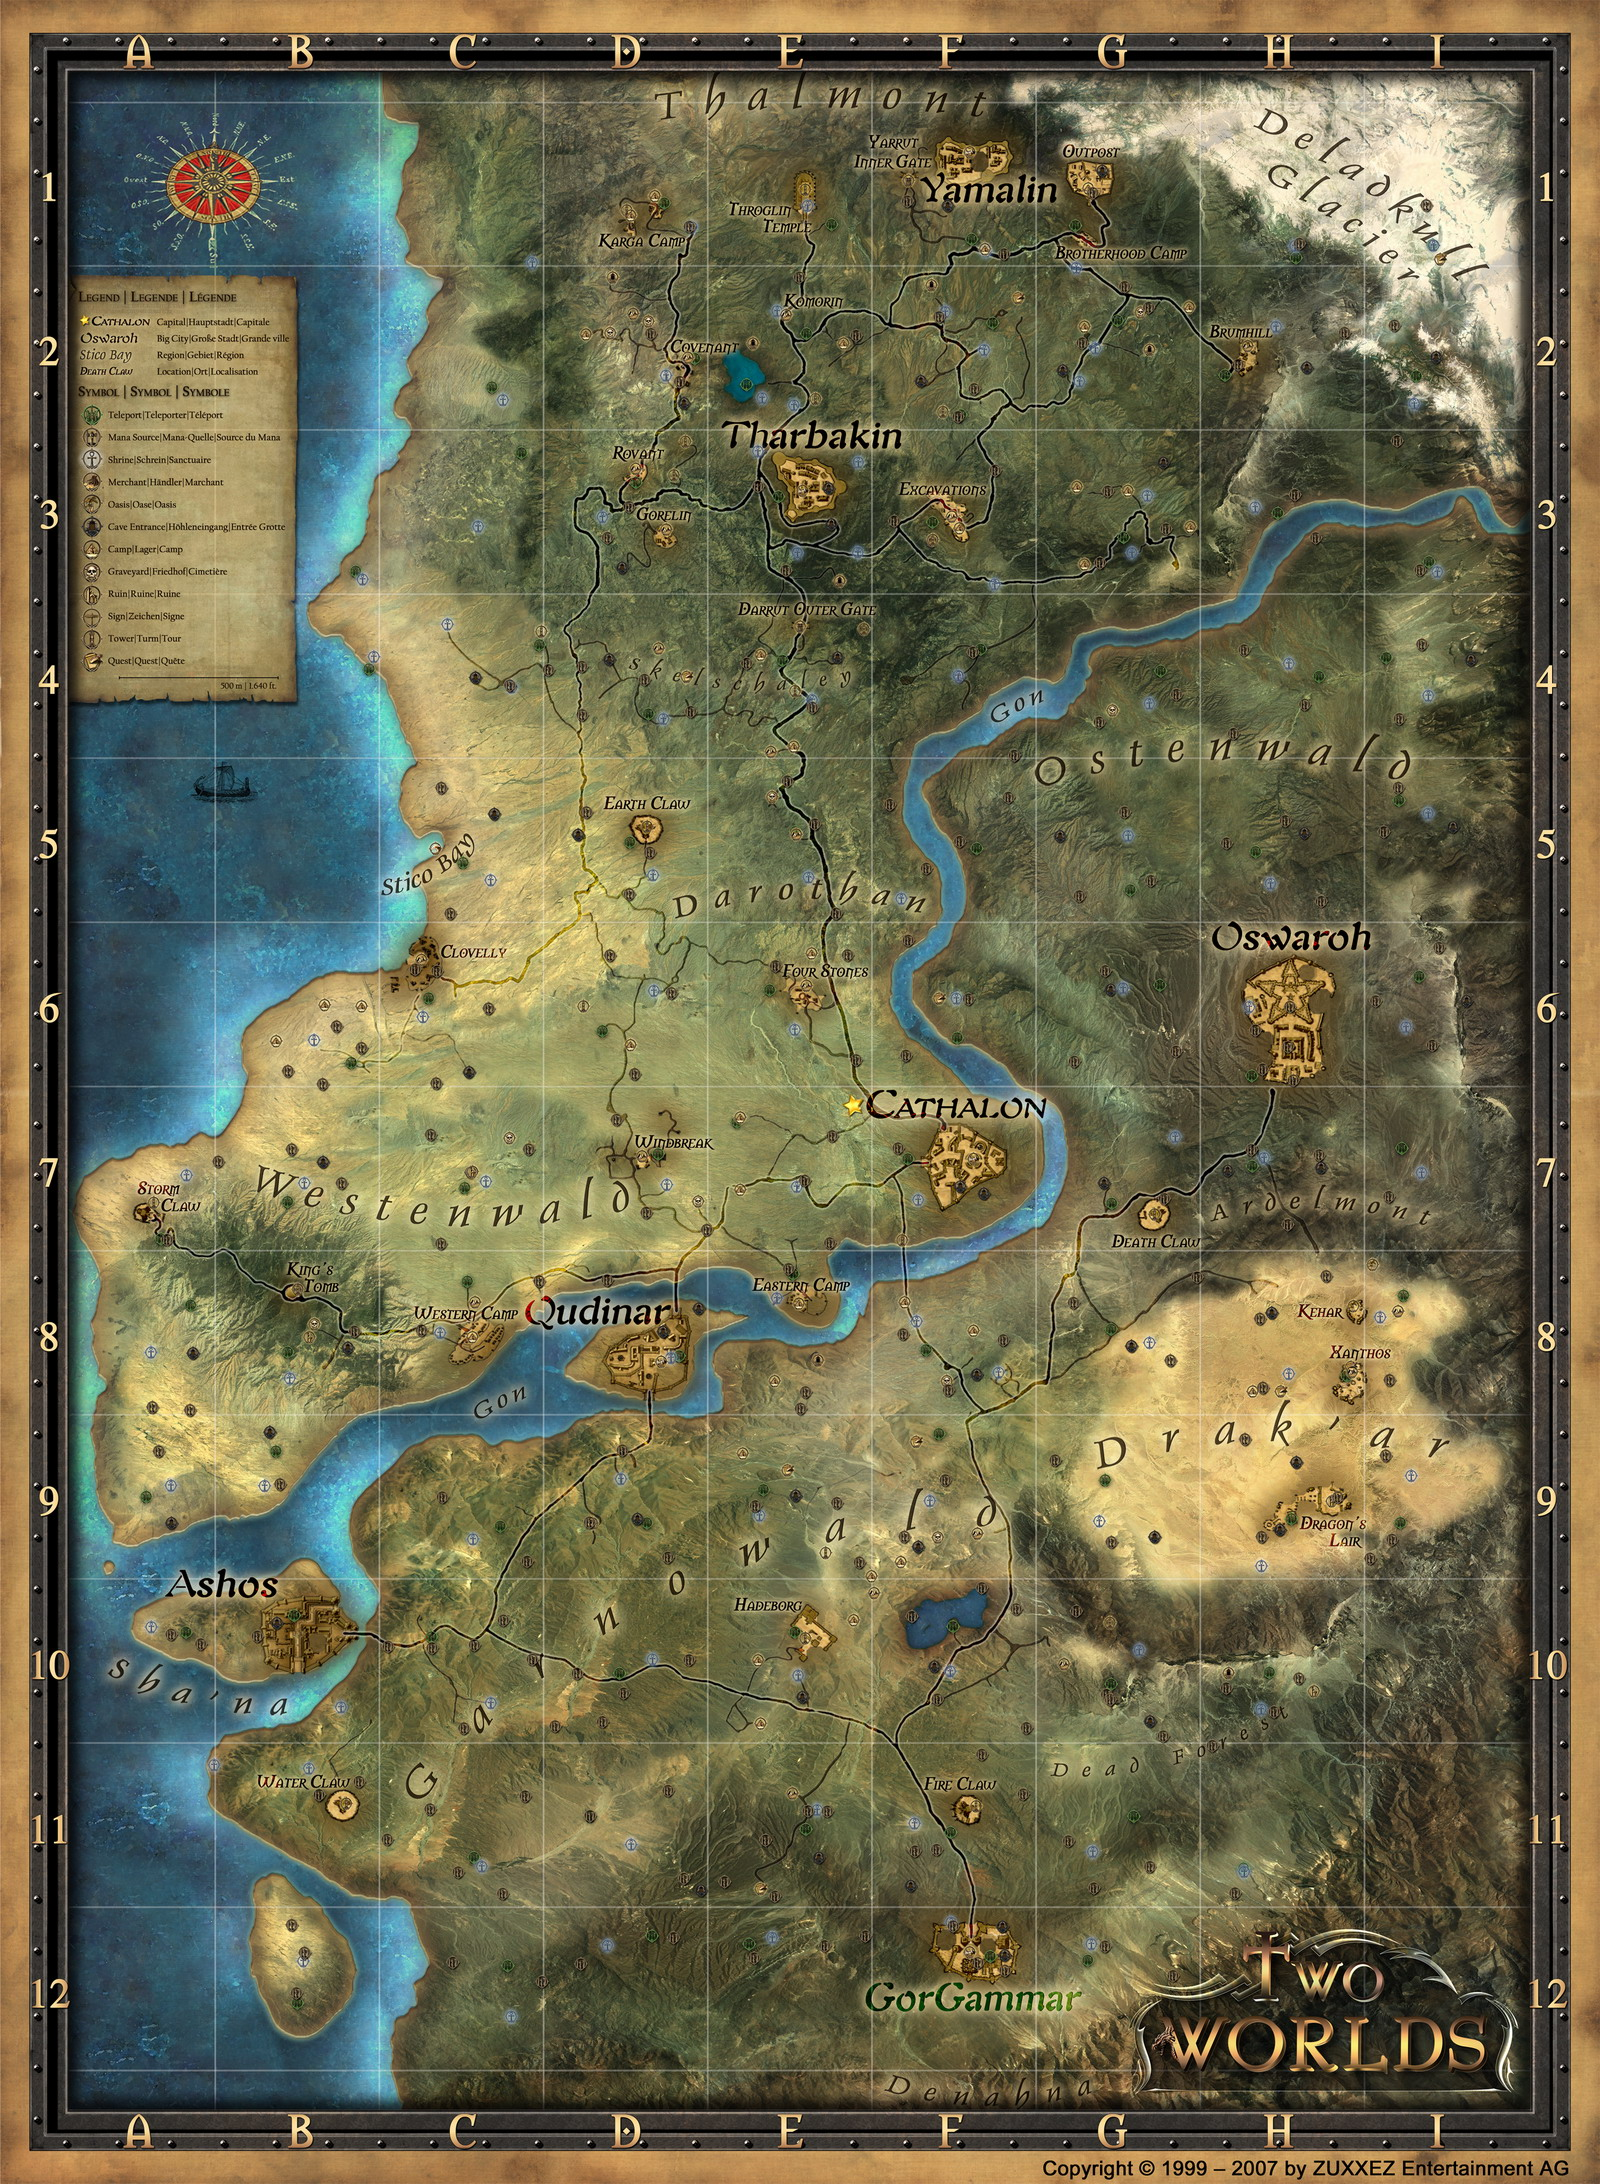 Image Map Fulljpg Two Worlds Wiki FANDOM Powered By Wikia - Worlds map